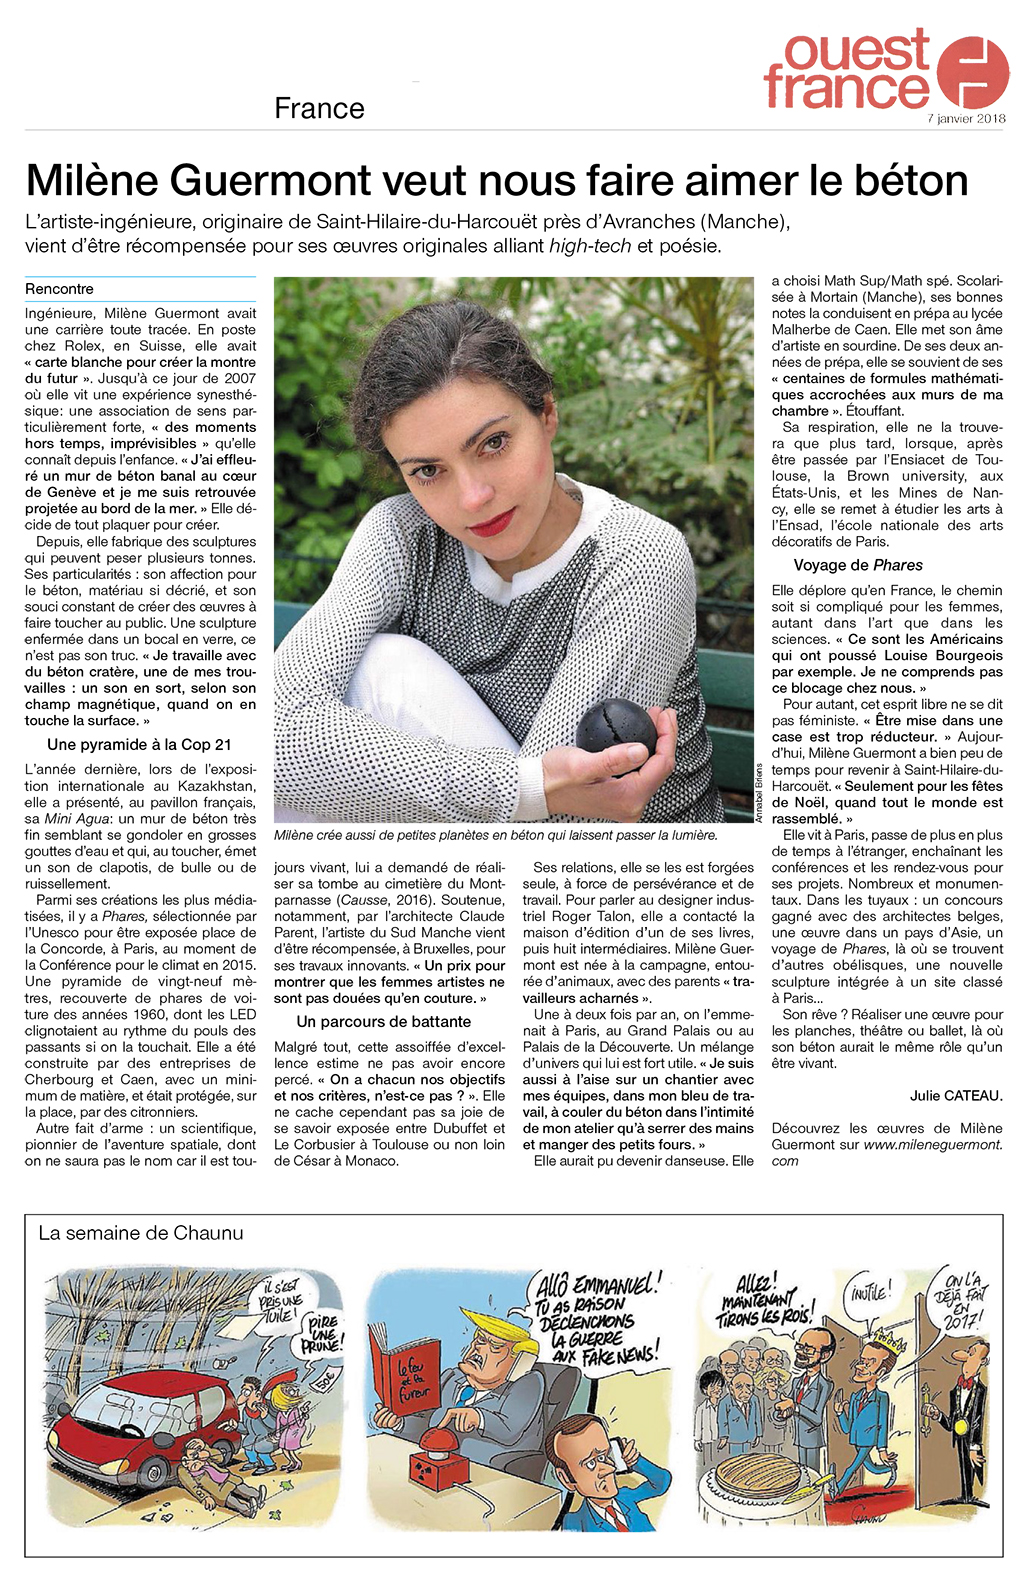 Portrait dans le quotidien le plus lu en France & stylish